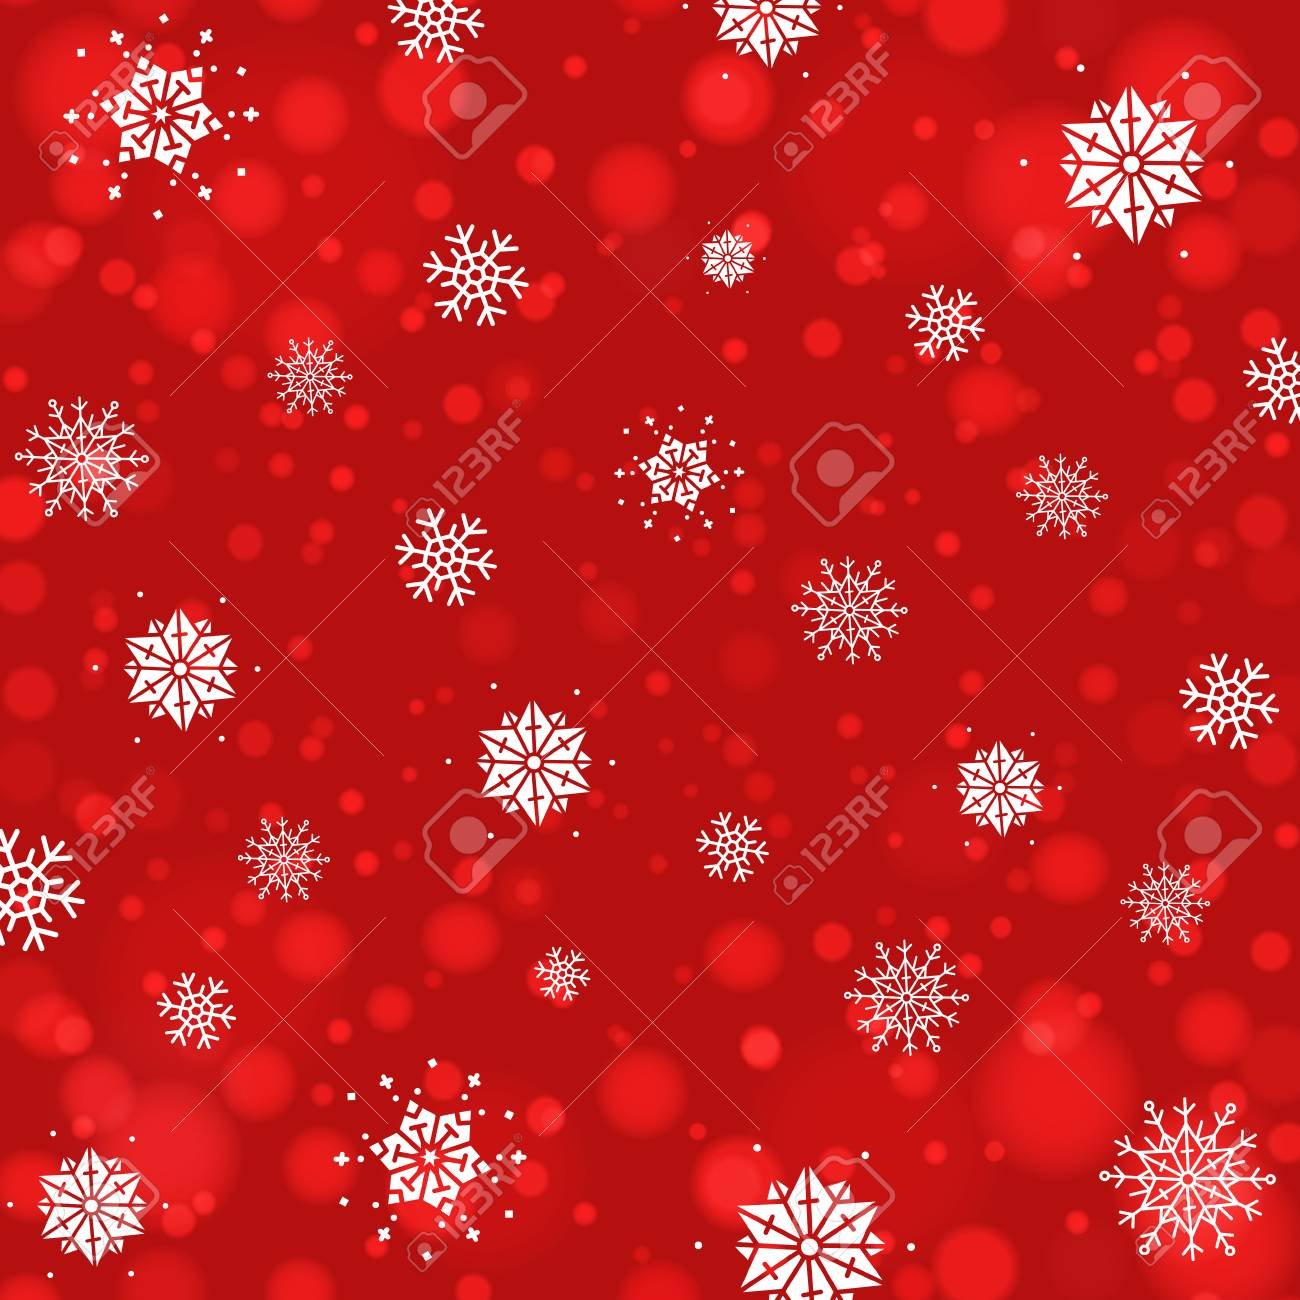 Abstract Christmas background with snowflakes and bokeh background. New year red back. - 94815163